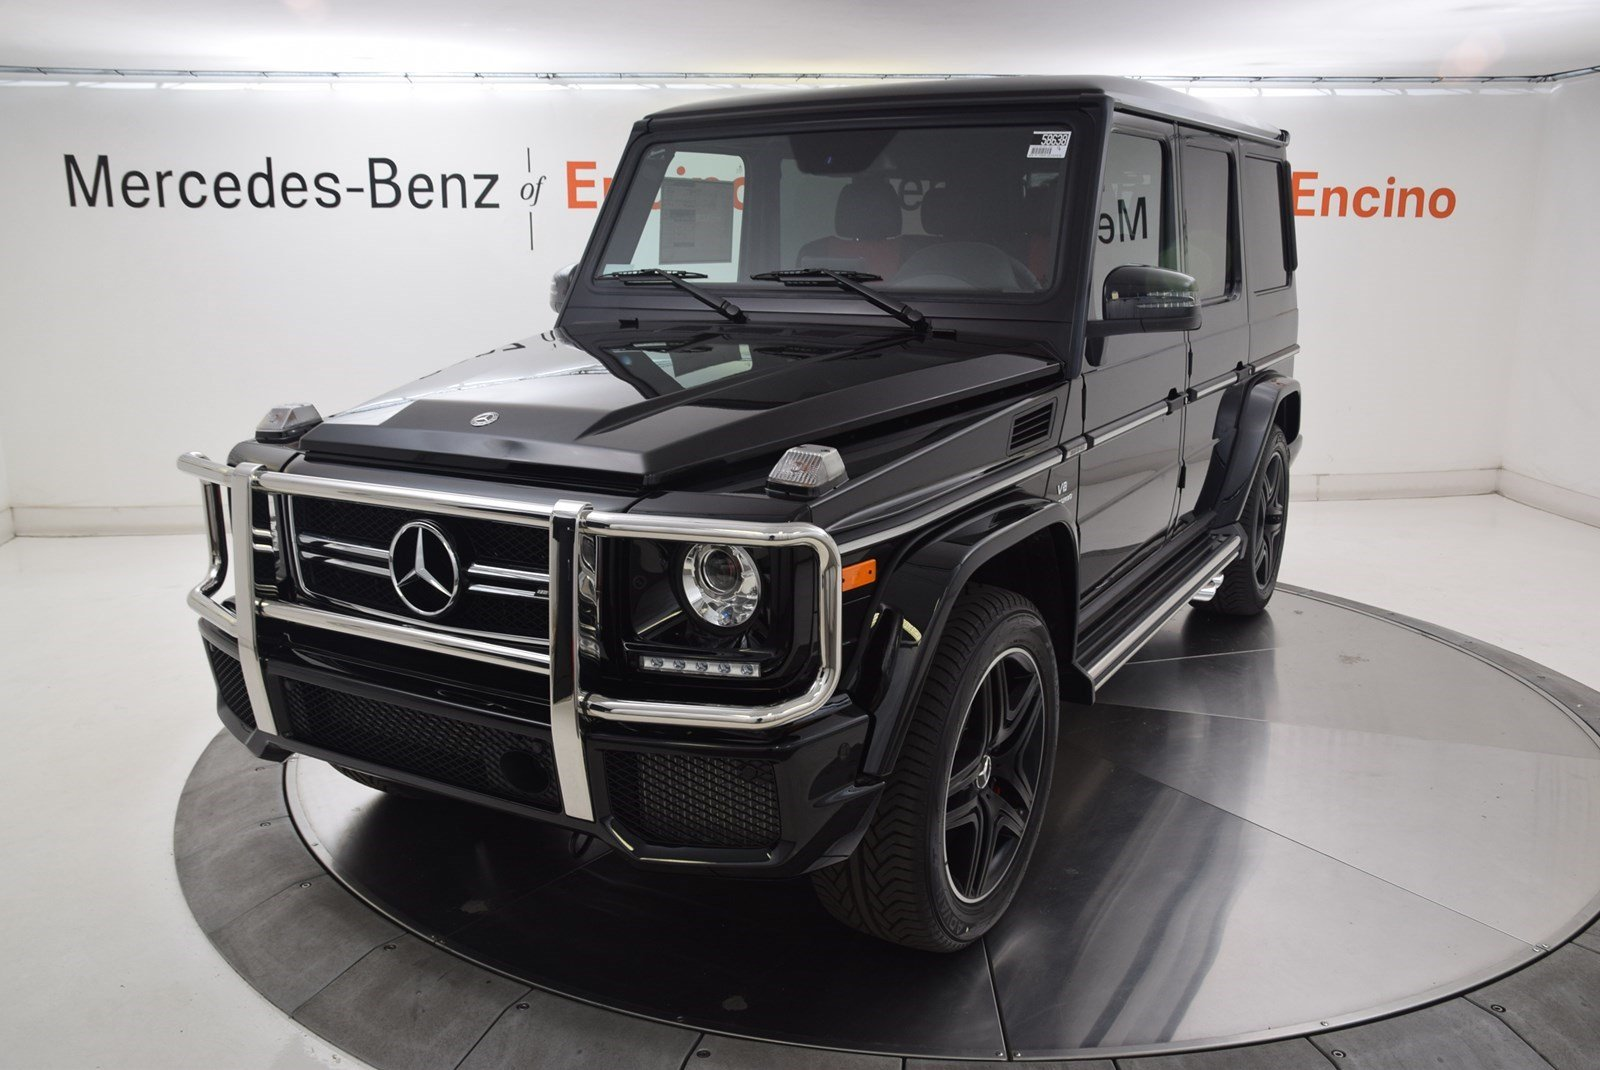 new 2018 mercedes benz g class amg g 63 suv suv in encino 58638 mercedes benz of encino. Black Bedroom Furniture Sets. Home Design Ideas